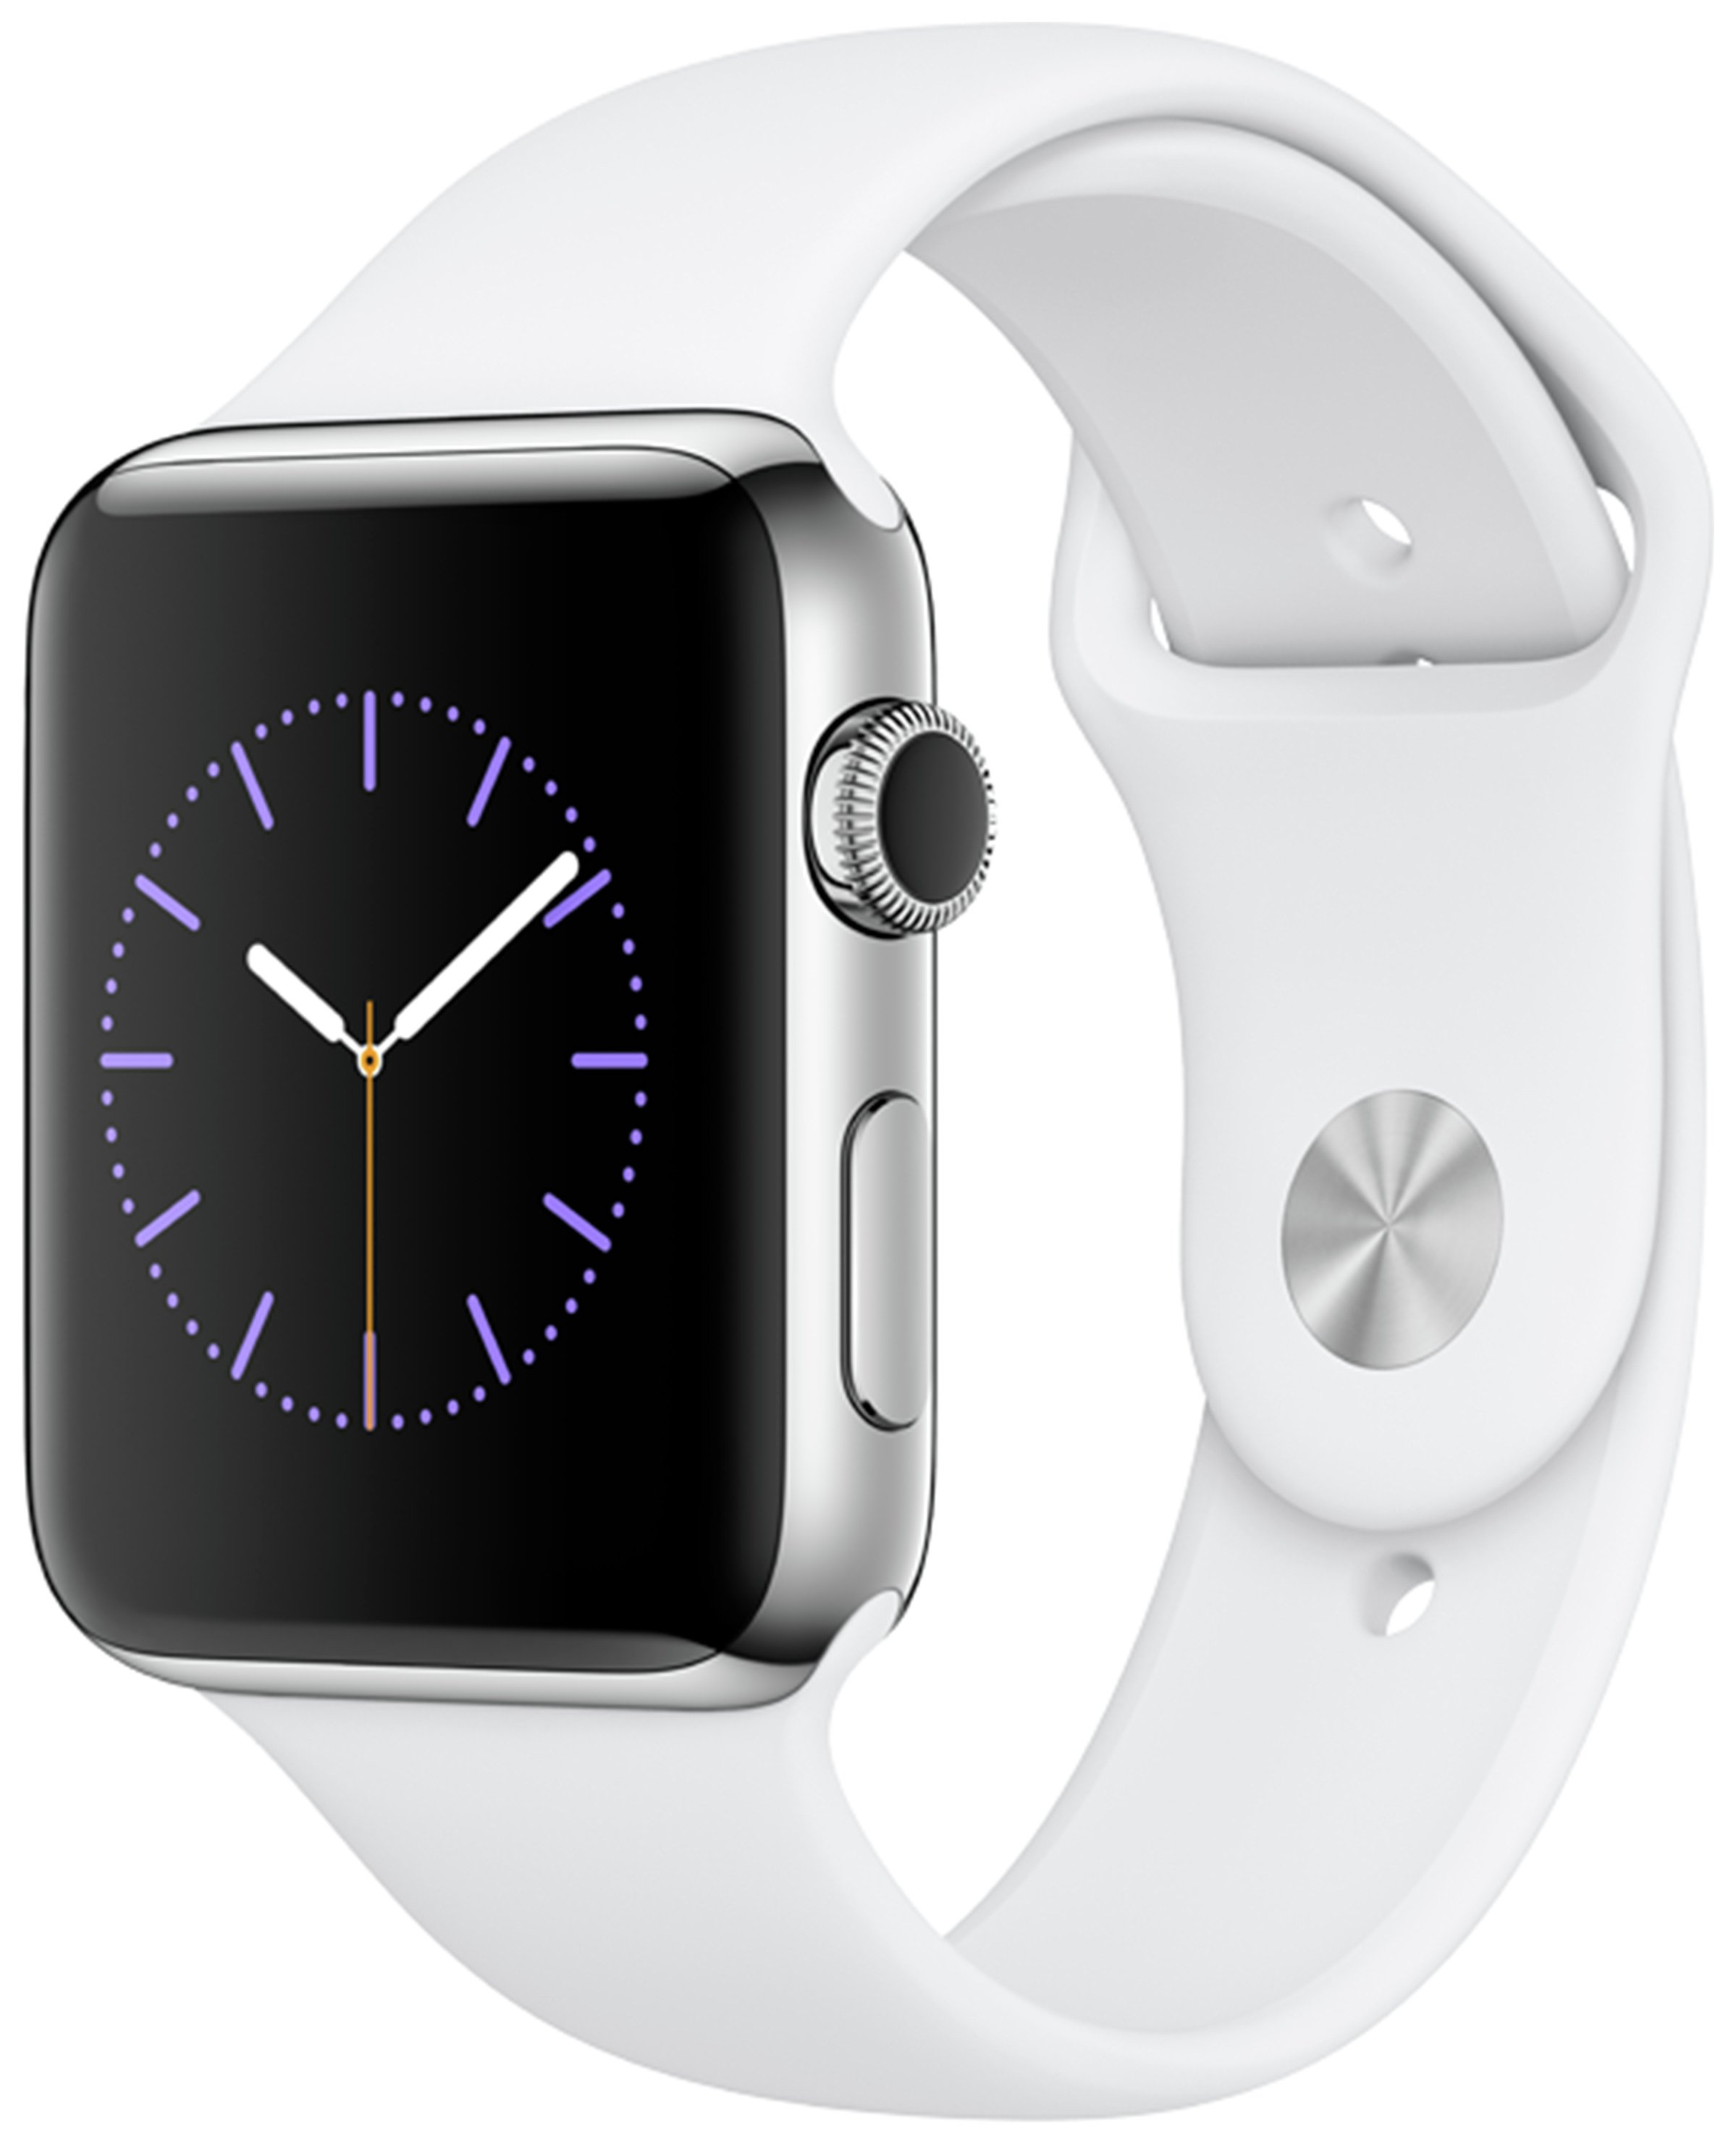 Apple Watch S2 42mm Stainless Steel White Sport Band. cheapest retail price